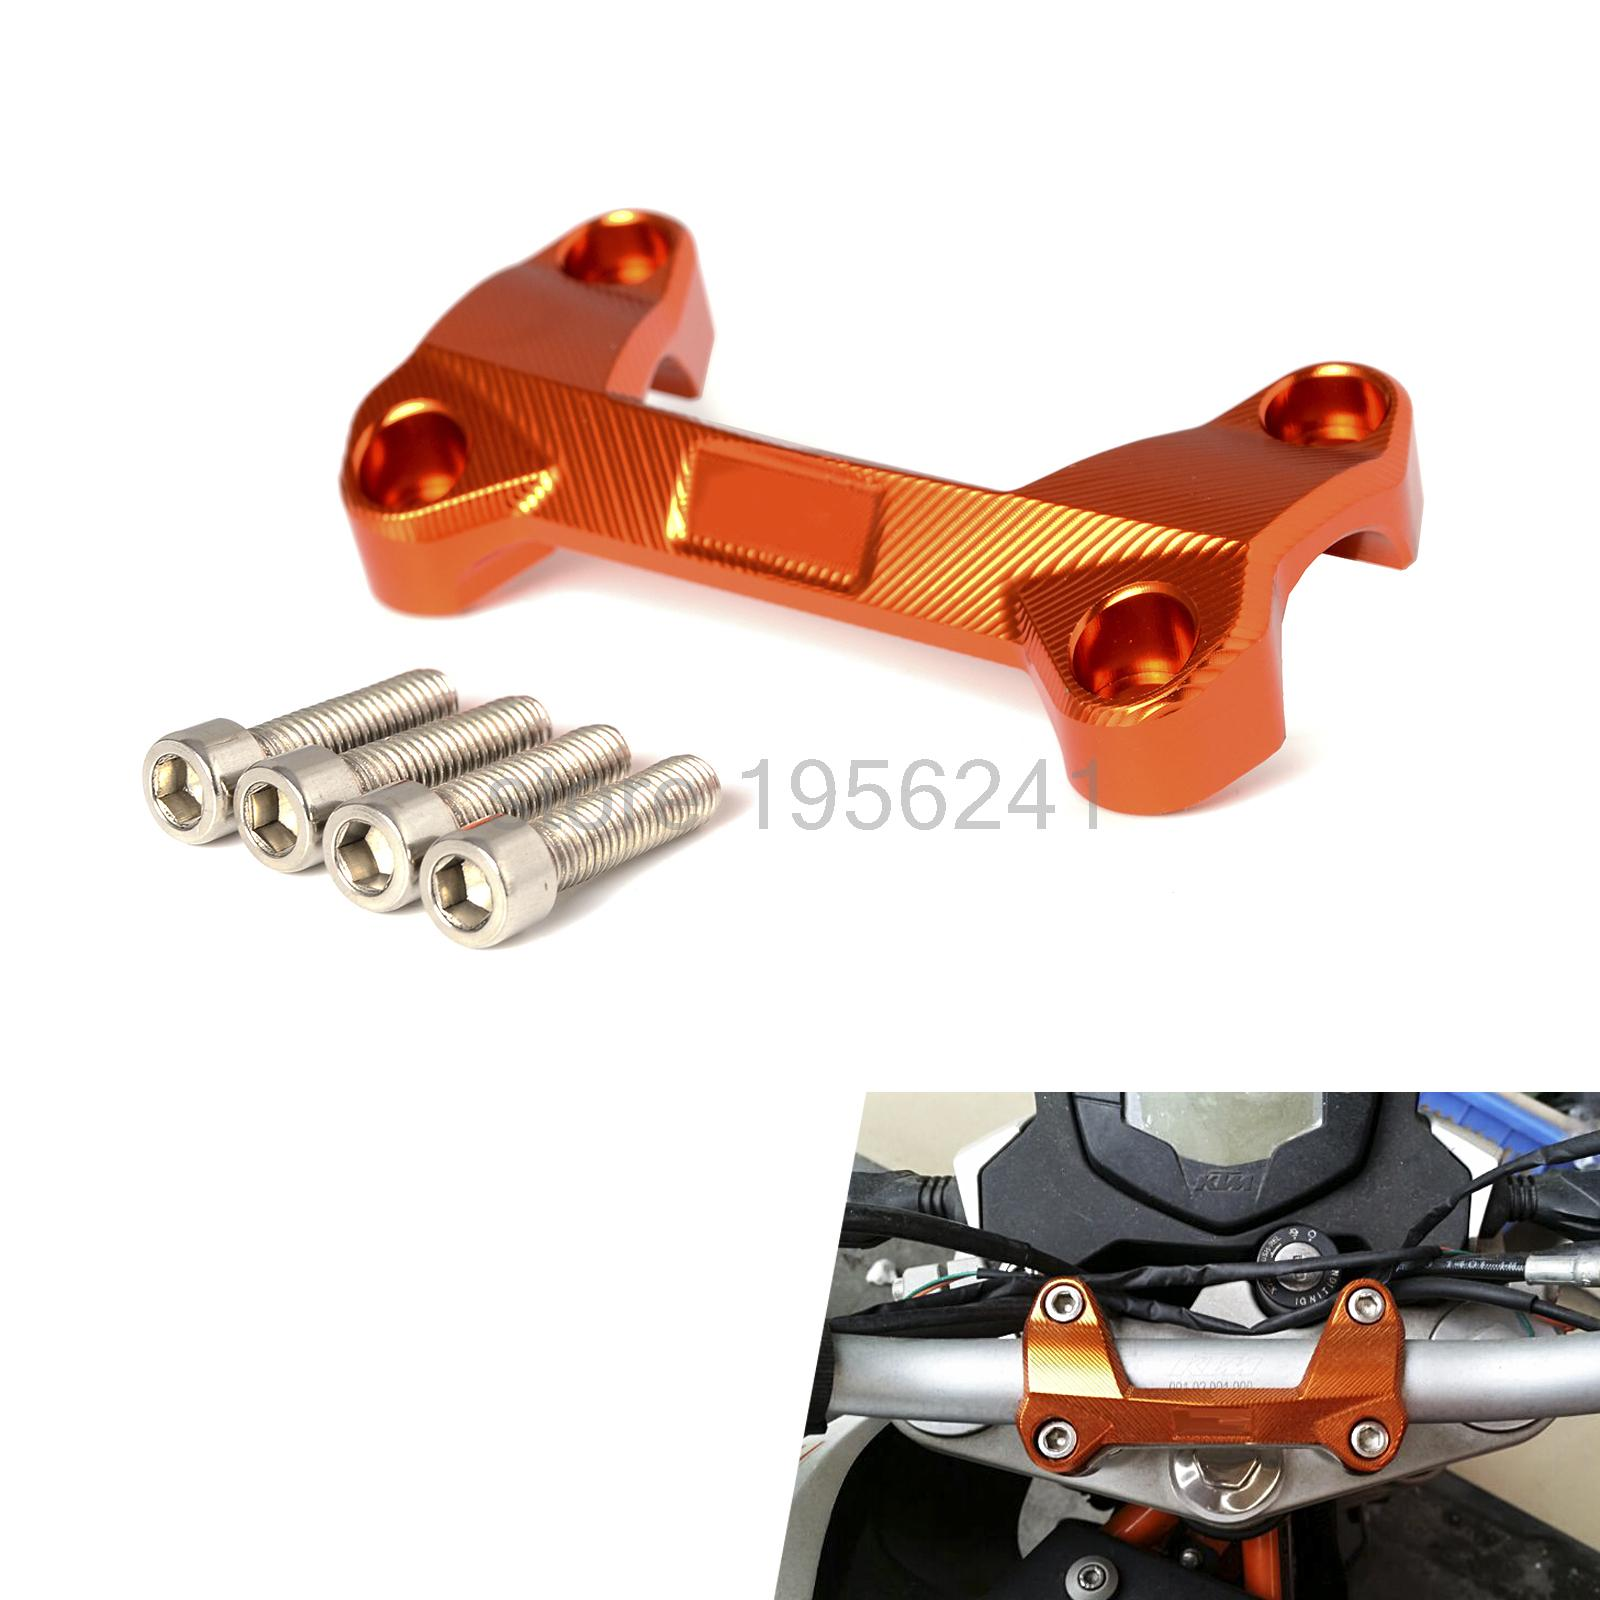 NICECNC CNC HandleBar Handle Bar Fat Bar Mount Clamp For KTM 125 200 390 Duke 2011 2012 2013 2014 2015 2016 motorcycle spring for cf400 duke ktm 125 duke 200 duke 390 handlebar balance bar can be stretched cross bar